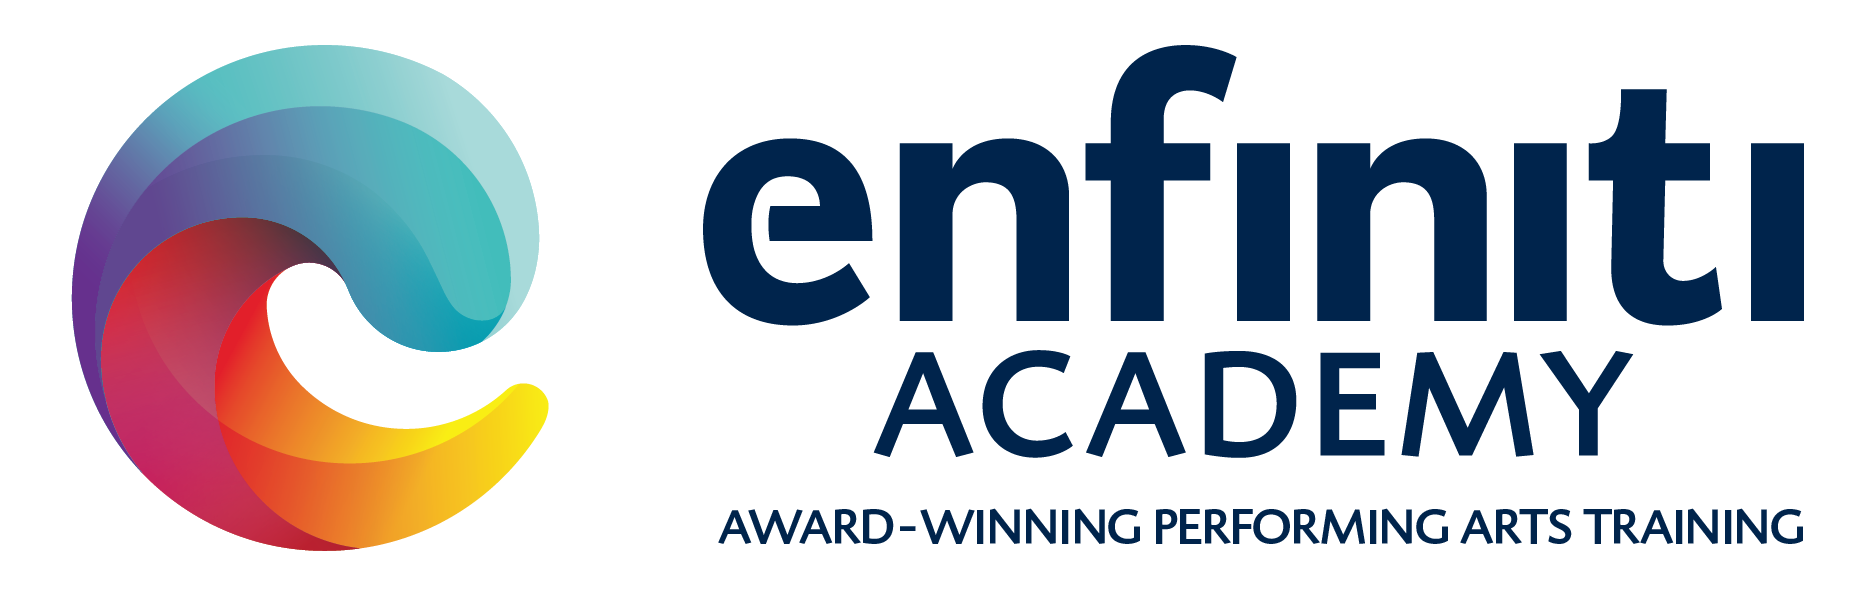 Enfiniti Academy of Performing Arts